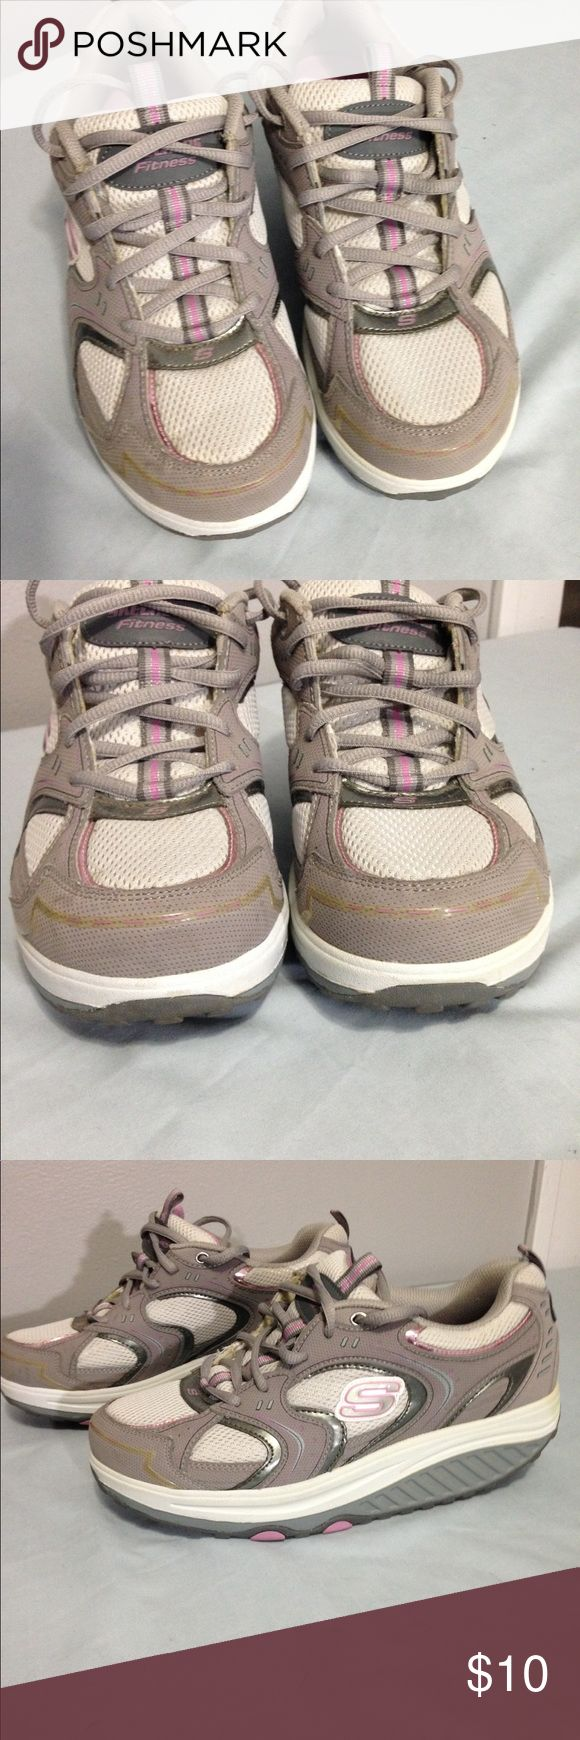 Sketchers Shape up athletic shoes Lovely gray and pick Sketcher Shape Up's have been gently used. The heal is firm and not broken down. The Shape of the sole is intact and not broken down. Upper is free or wear or stains. White part of sole appears to have a light grass stain on heals. Clean and ready to wear. Skechers Shoes Athletic Shoes